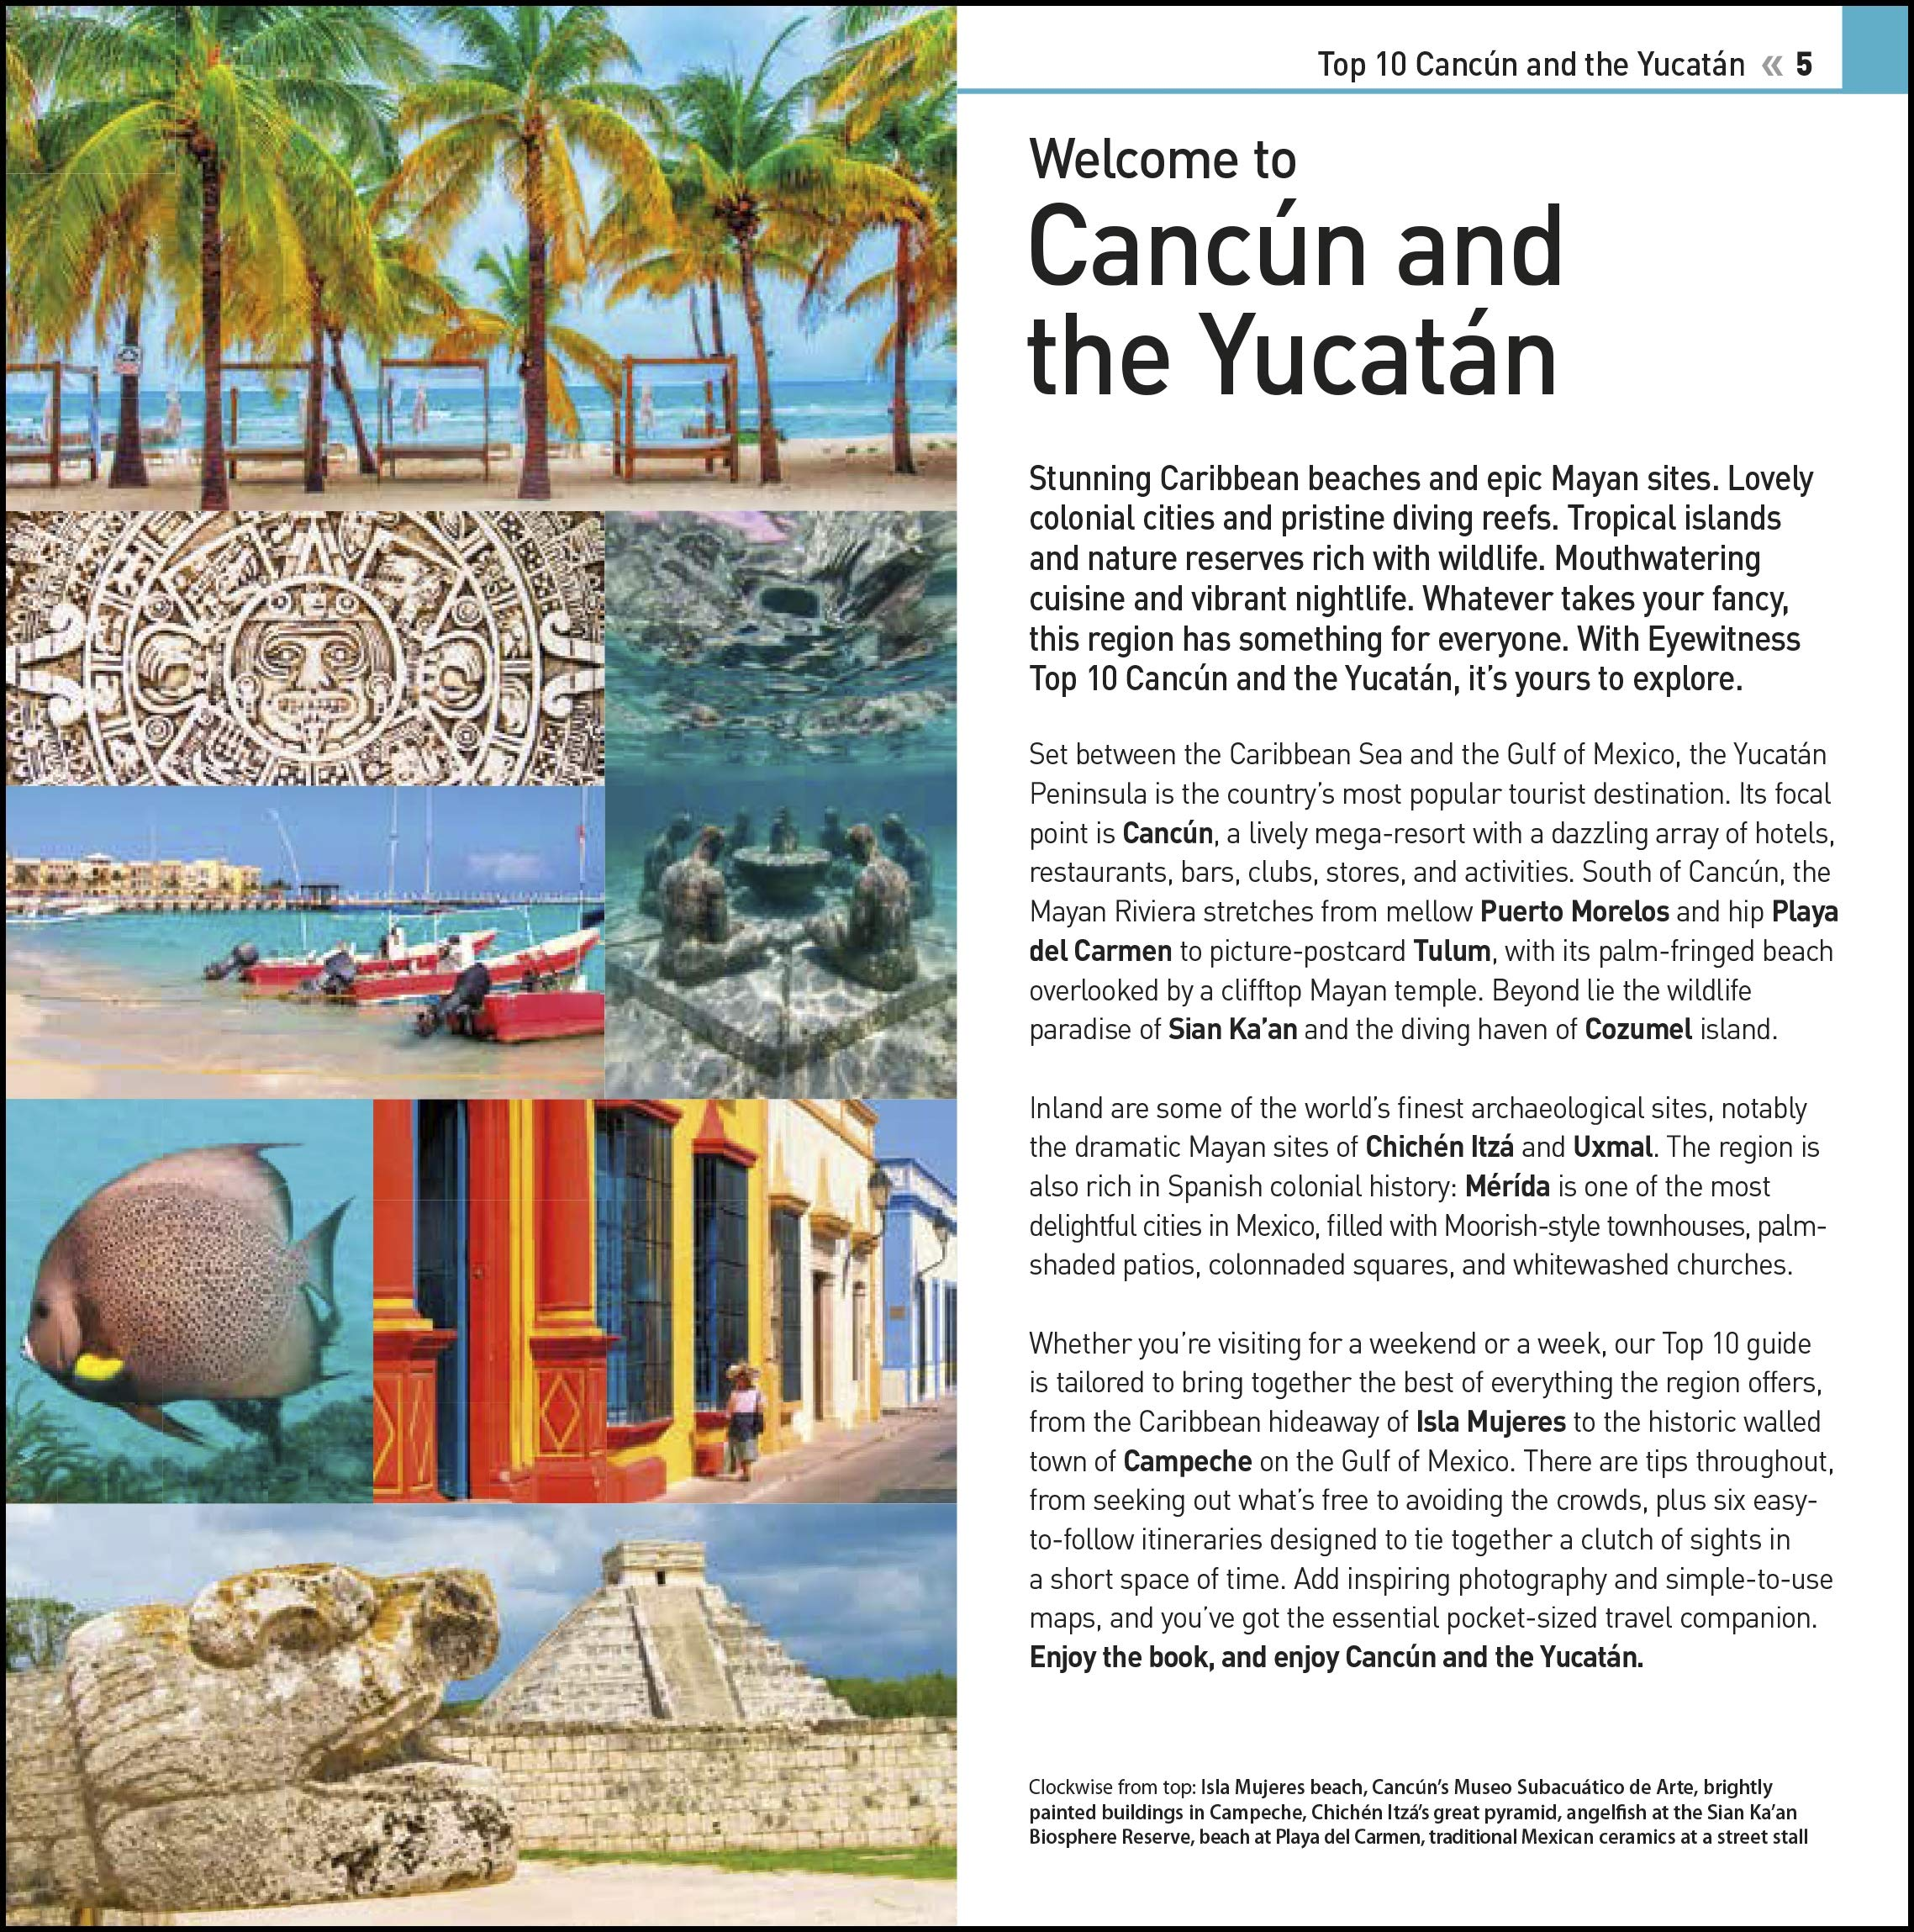 Eyewitness Cancun & the Yucatan Top 10